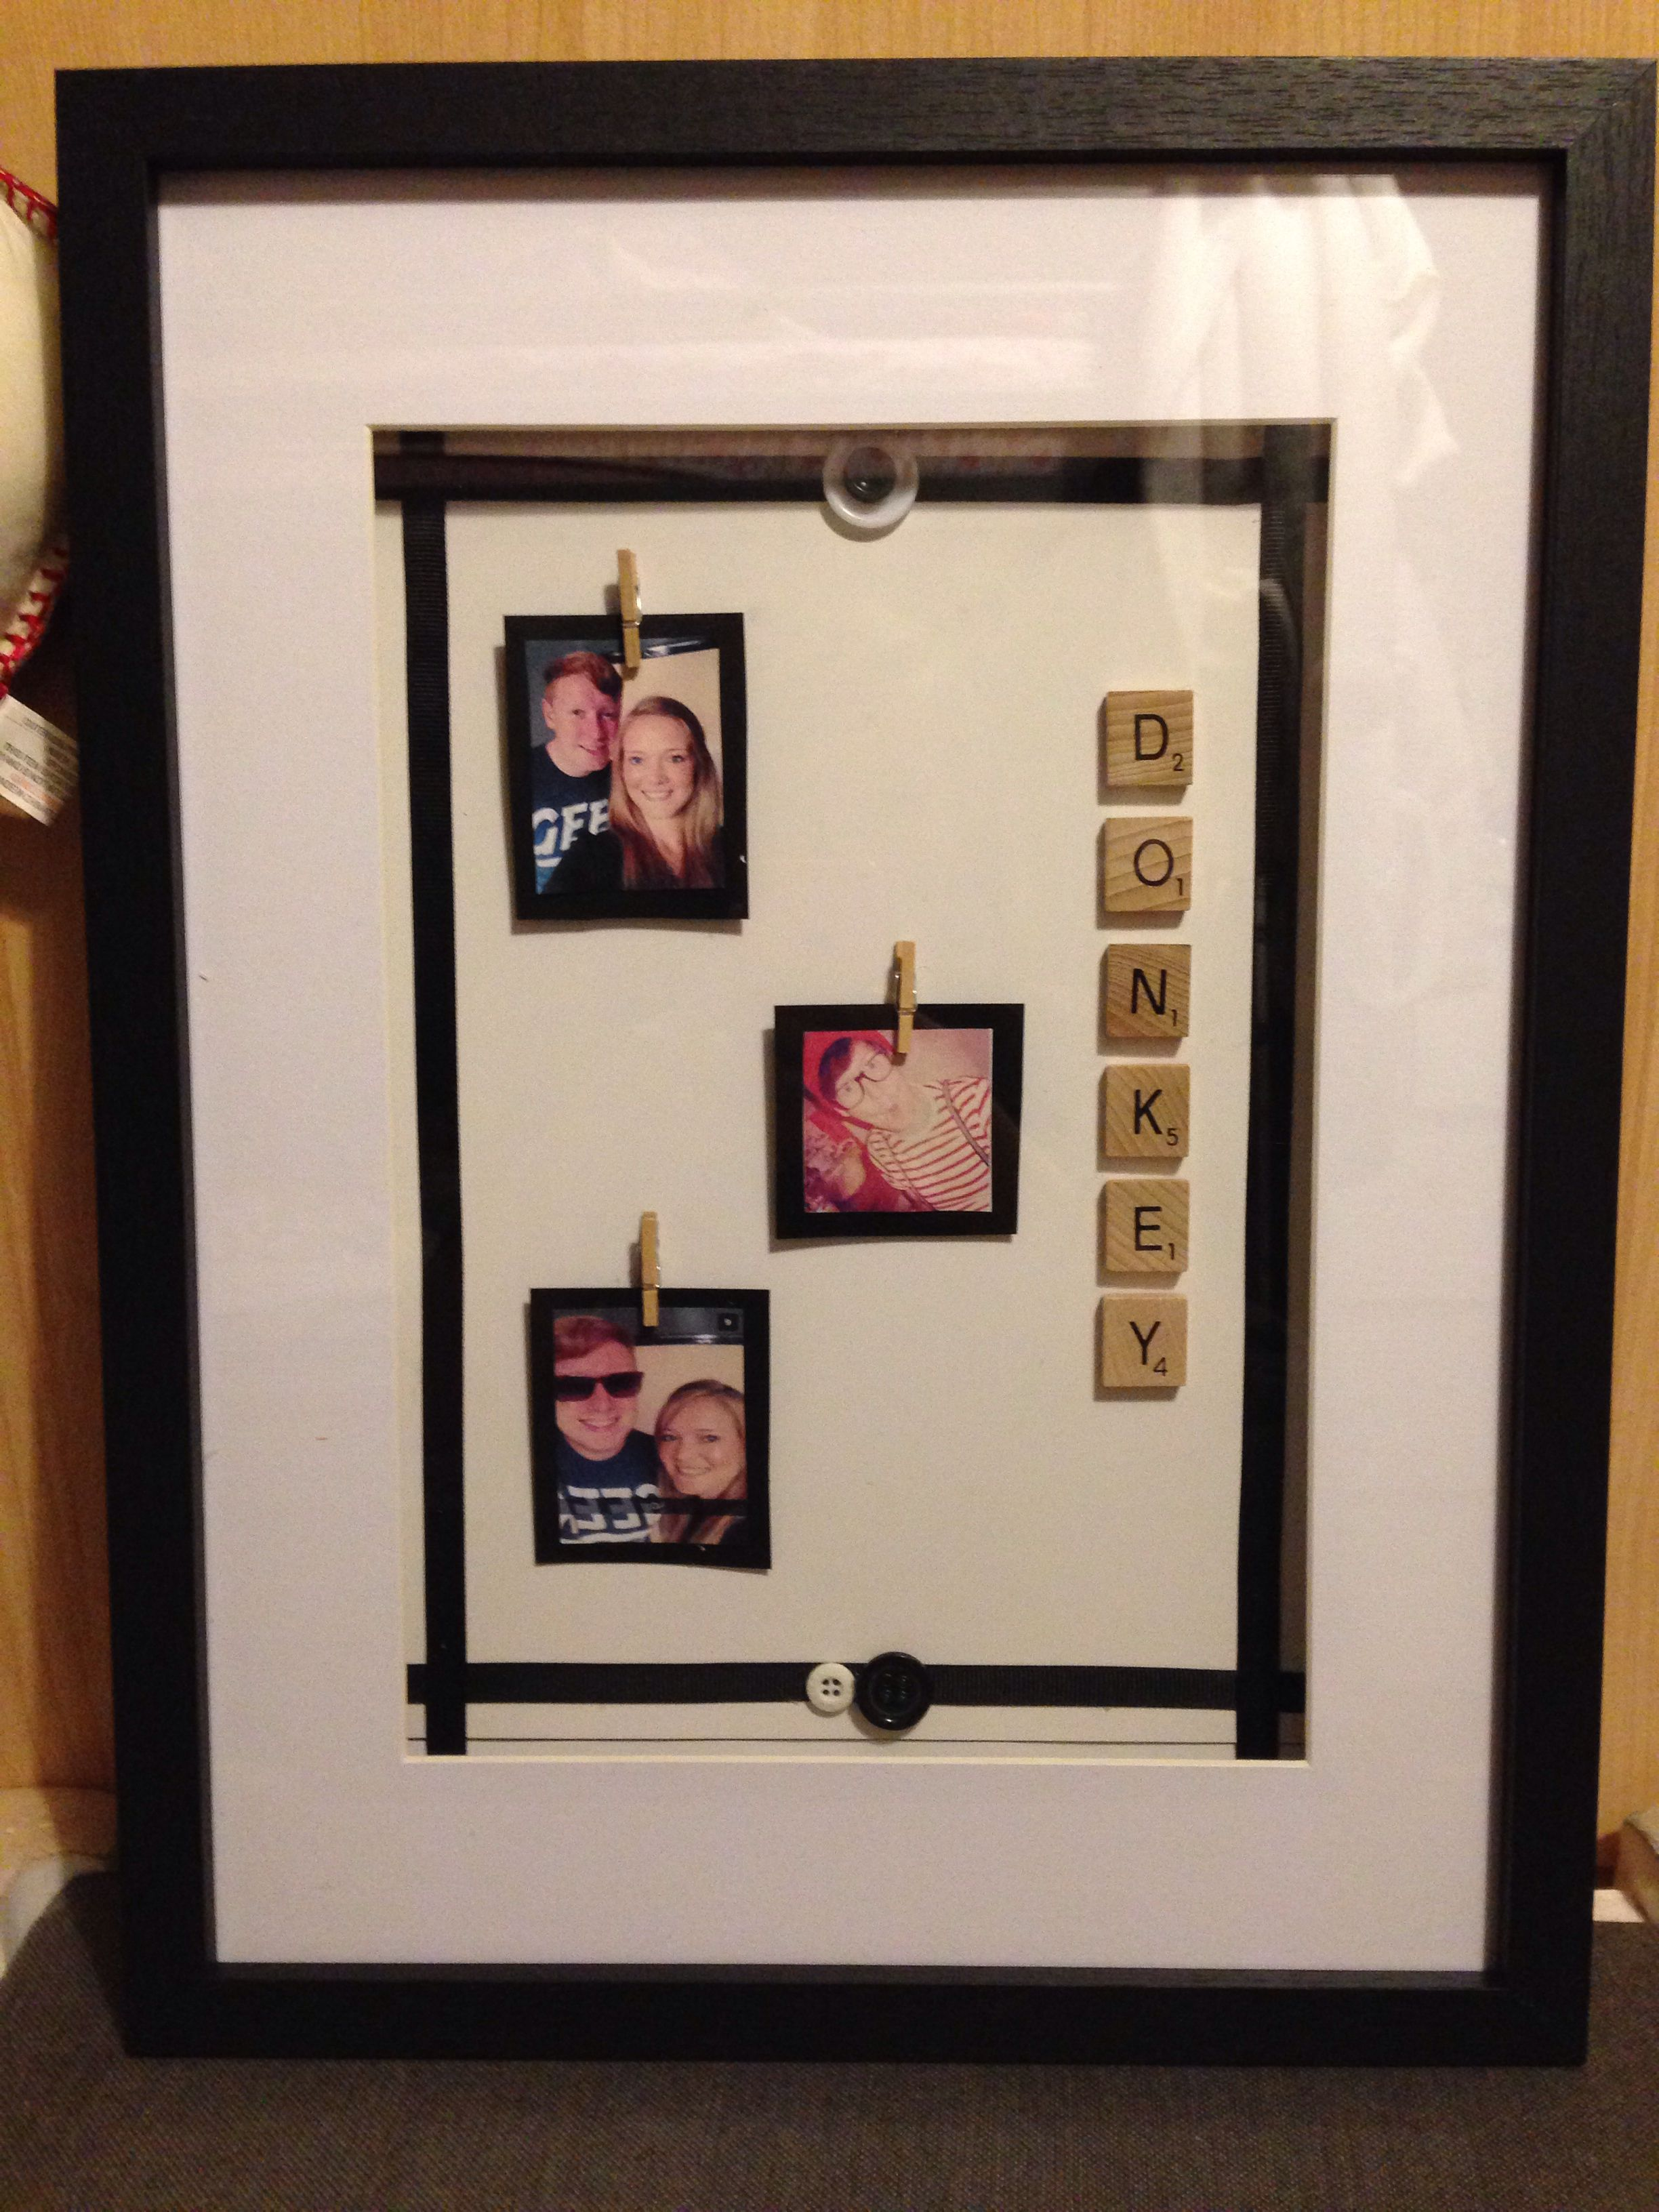 Friend scrabble art frame | Craft | Pinterest | Scrabble art ...